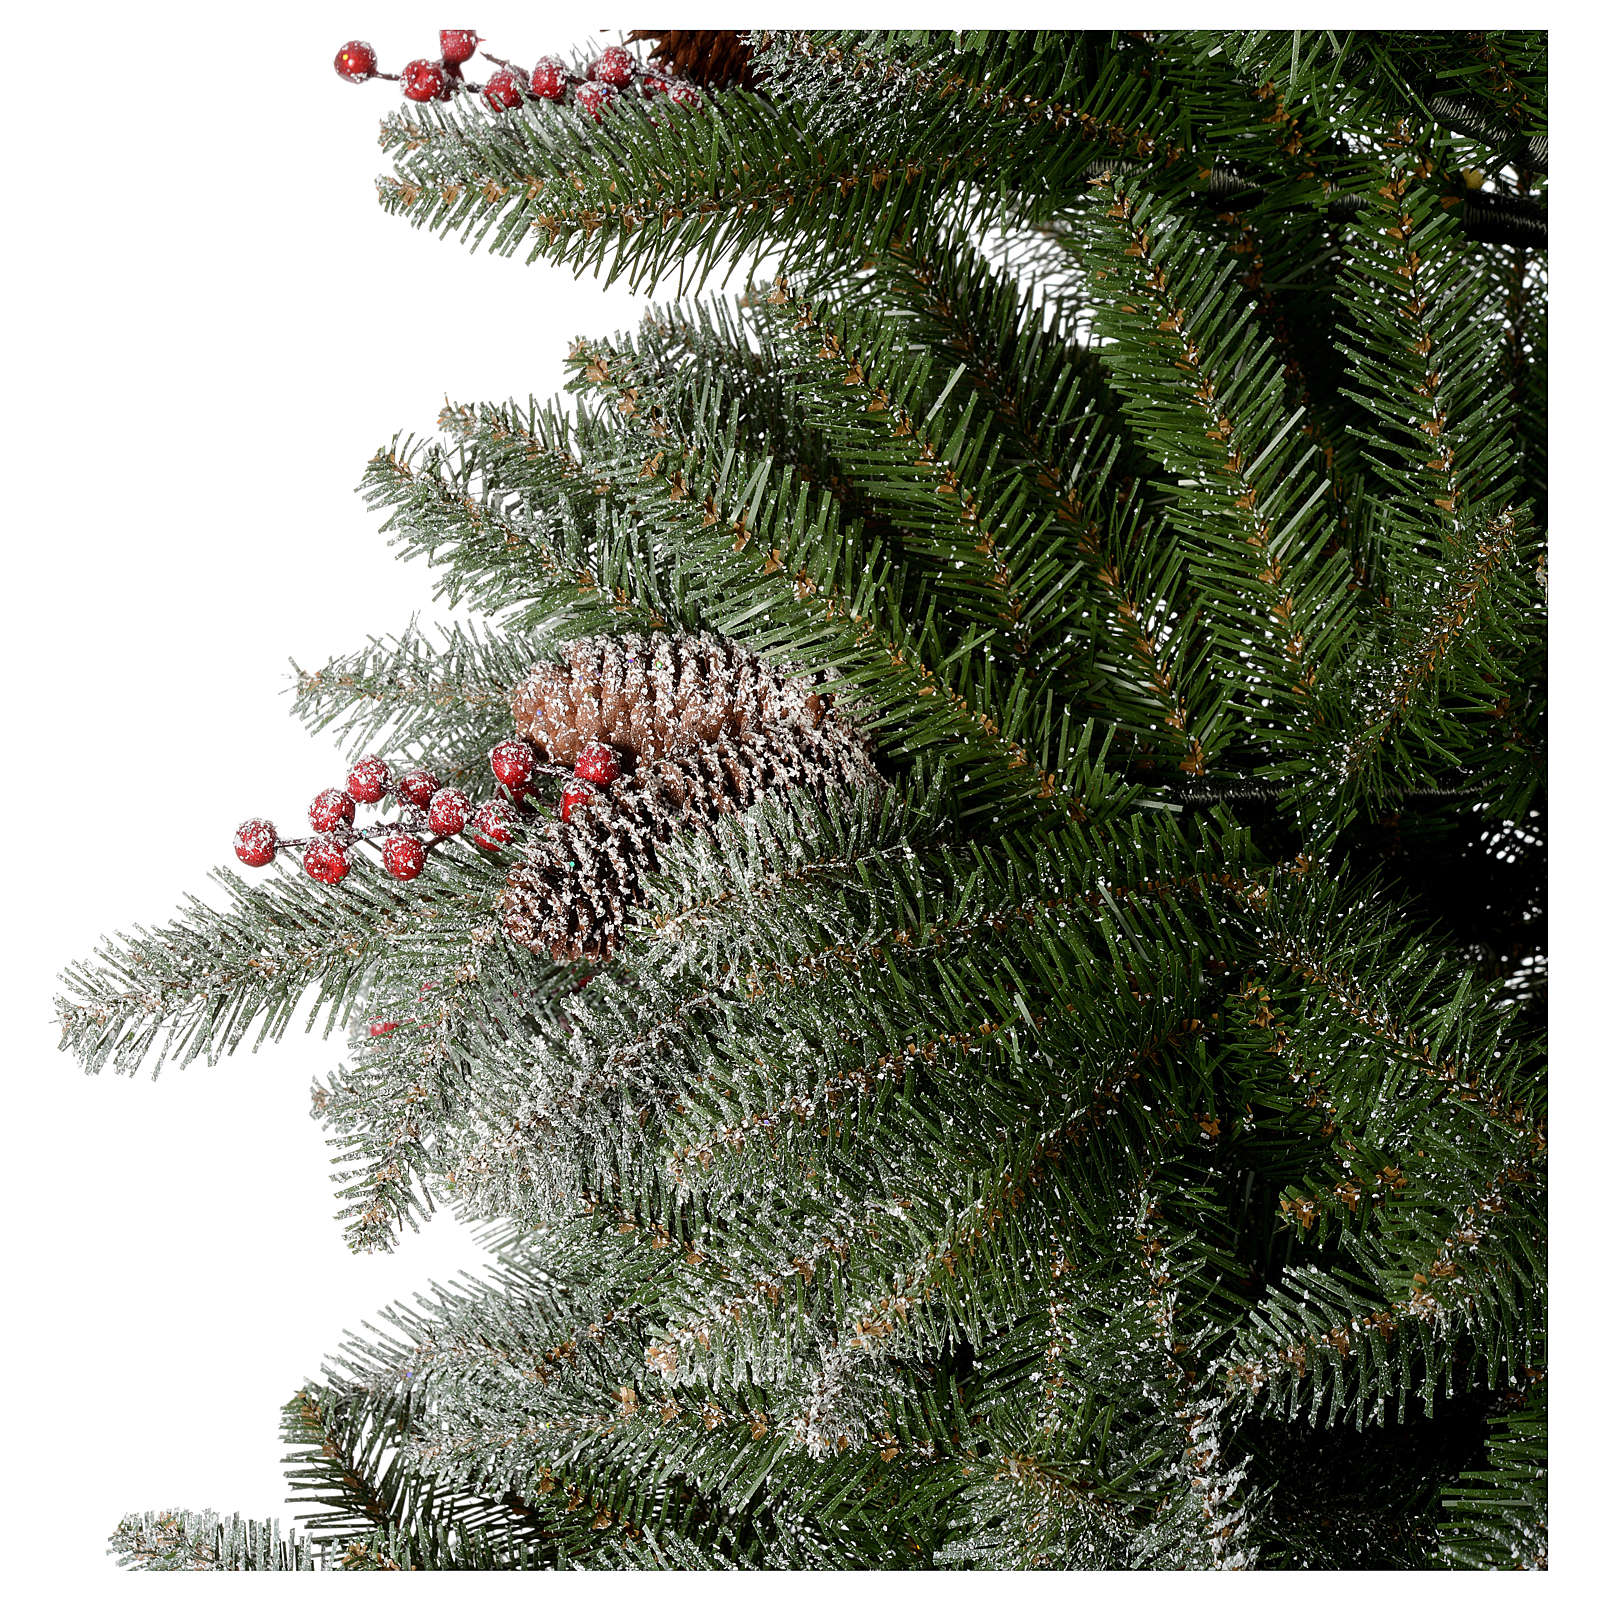 Christmas Tree With Pine Cones And Berries: Christmas Tree 210 Cm, Flocked Dunhil With Pine Cones And